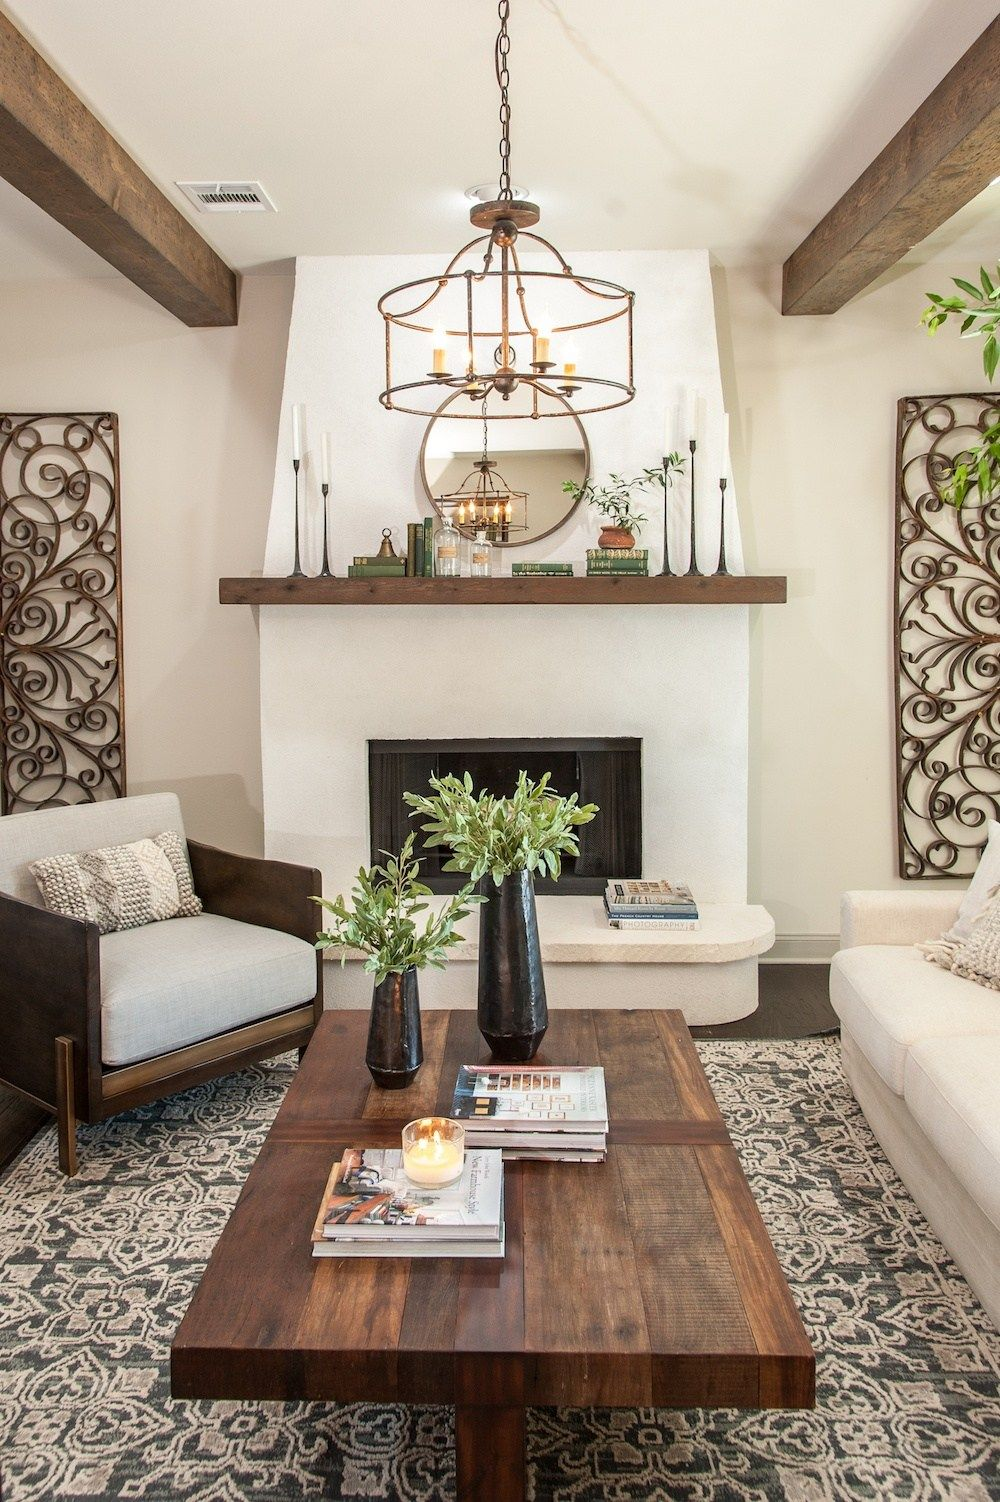 Get This Look Farmhouse Formal Living Room From Fixer Upper Hot Sauce House Mediterranean Living Rooms Farmhouse Style Living Room Formal Living Room Decor